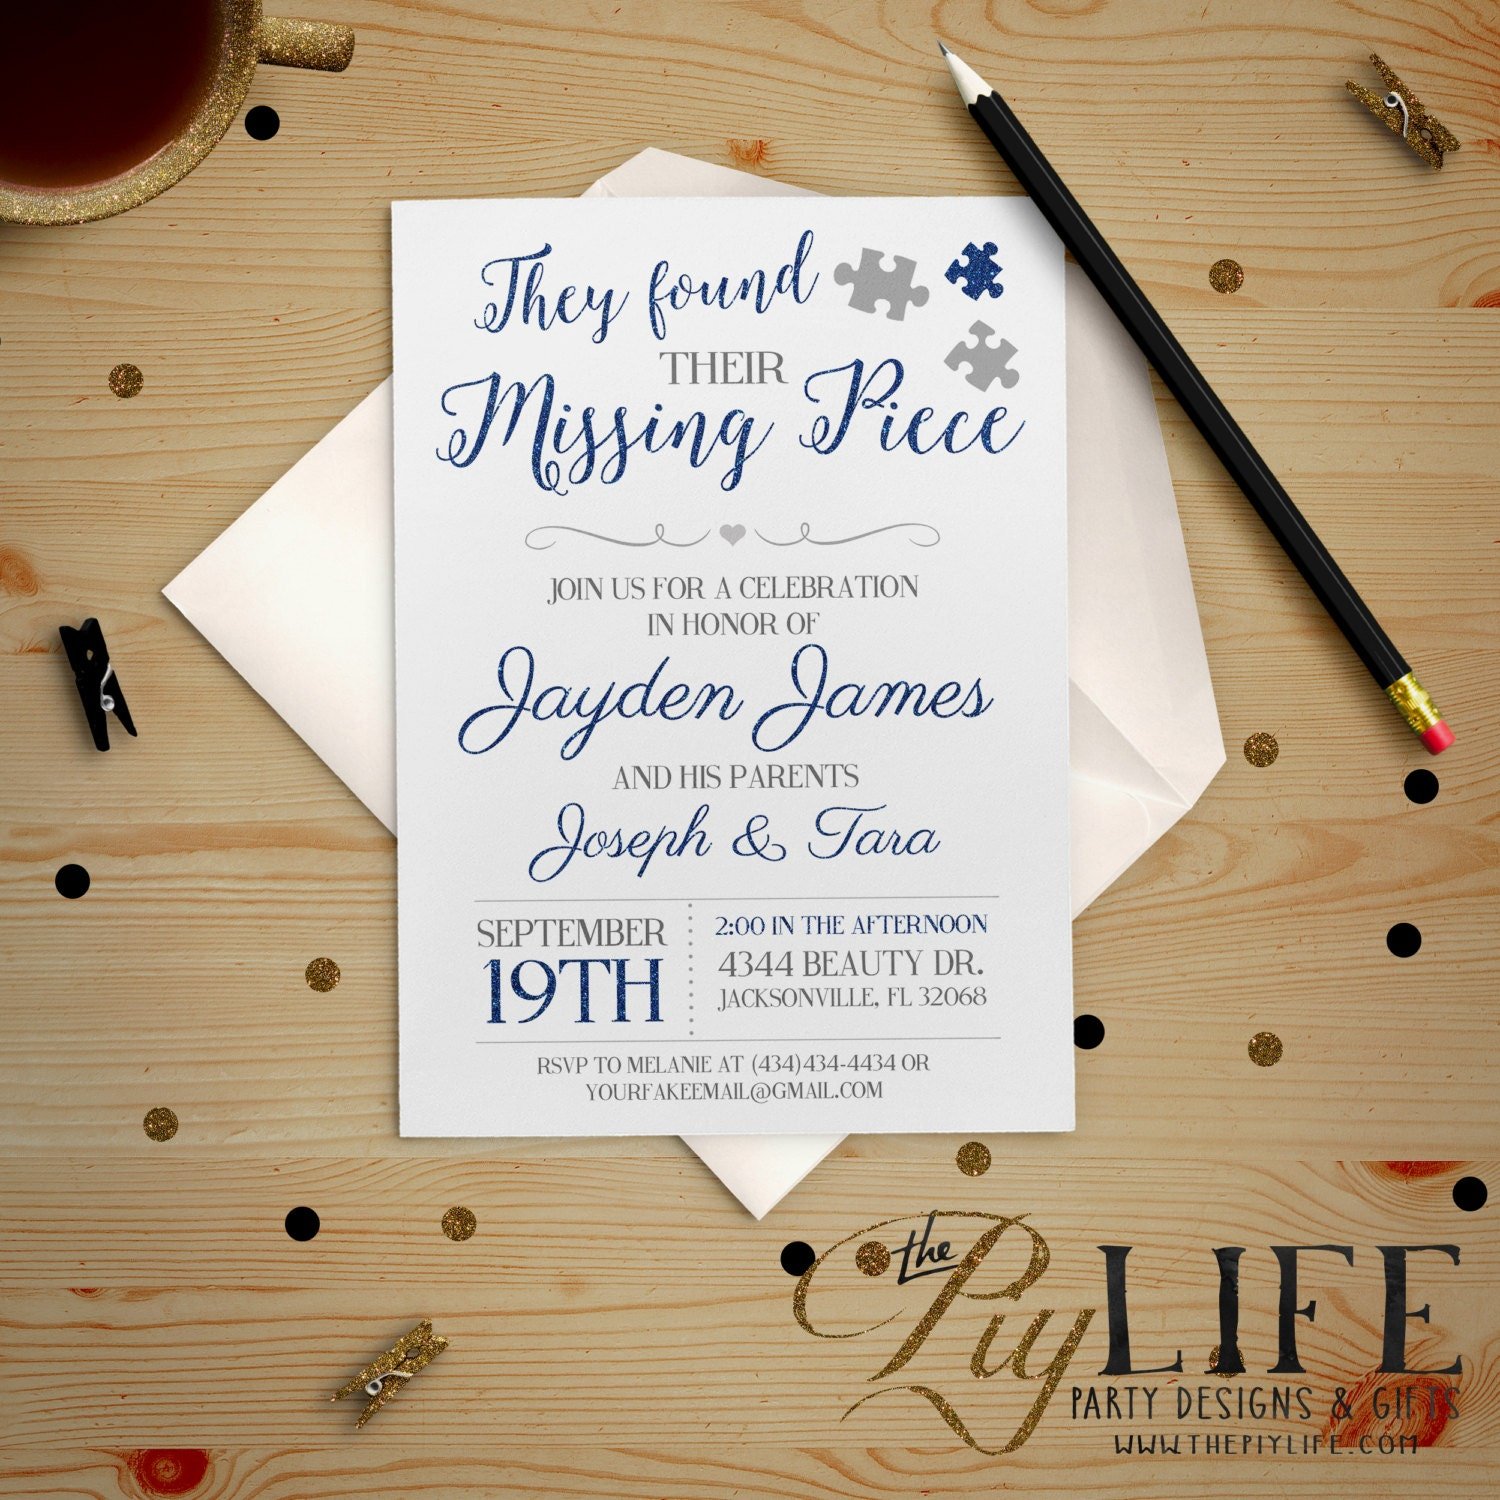 The missing piece tampa fl - Adoption Party Etsy Party Invitations